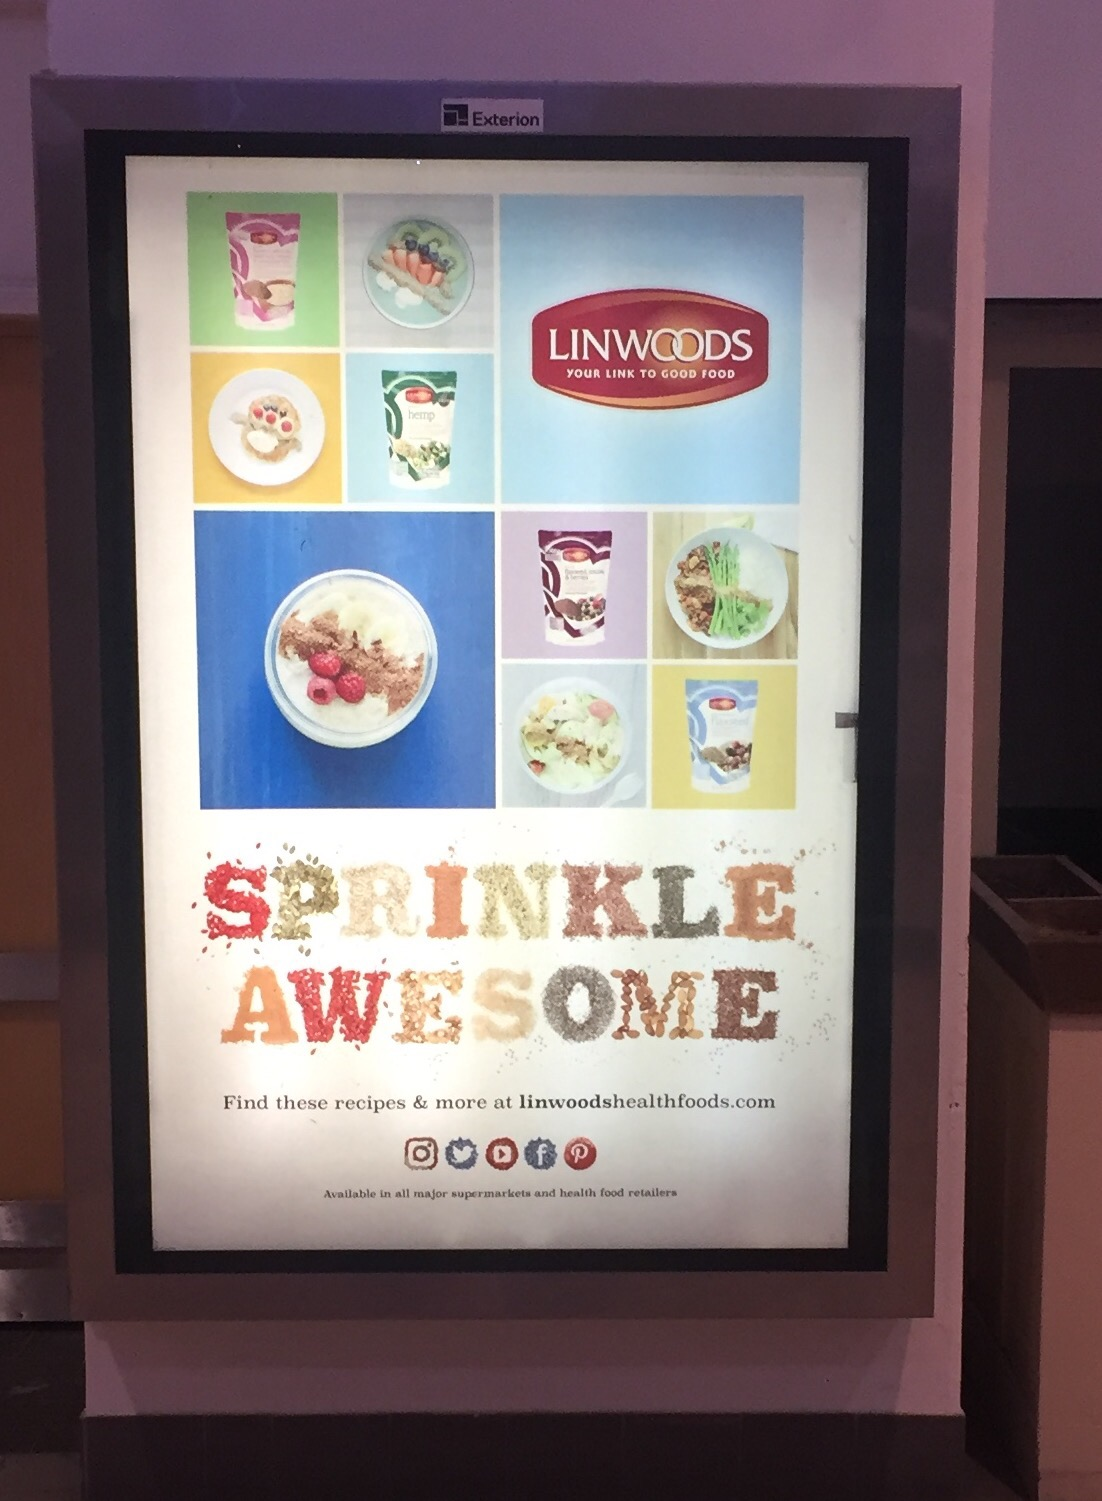 Linwoods – sprinkle awesome